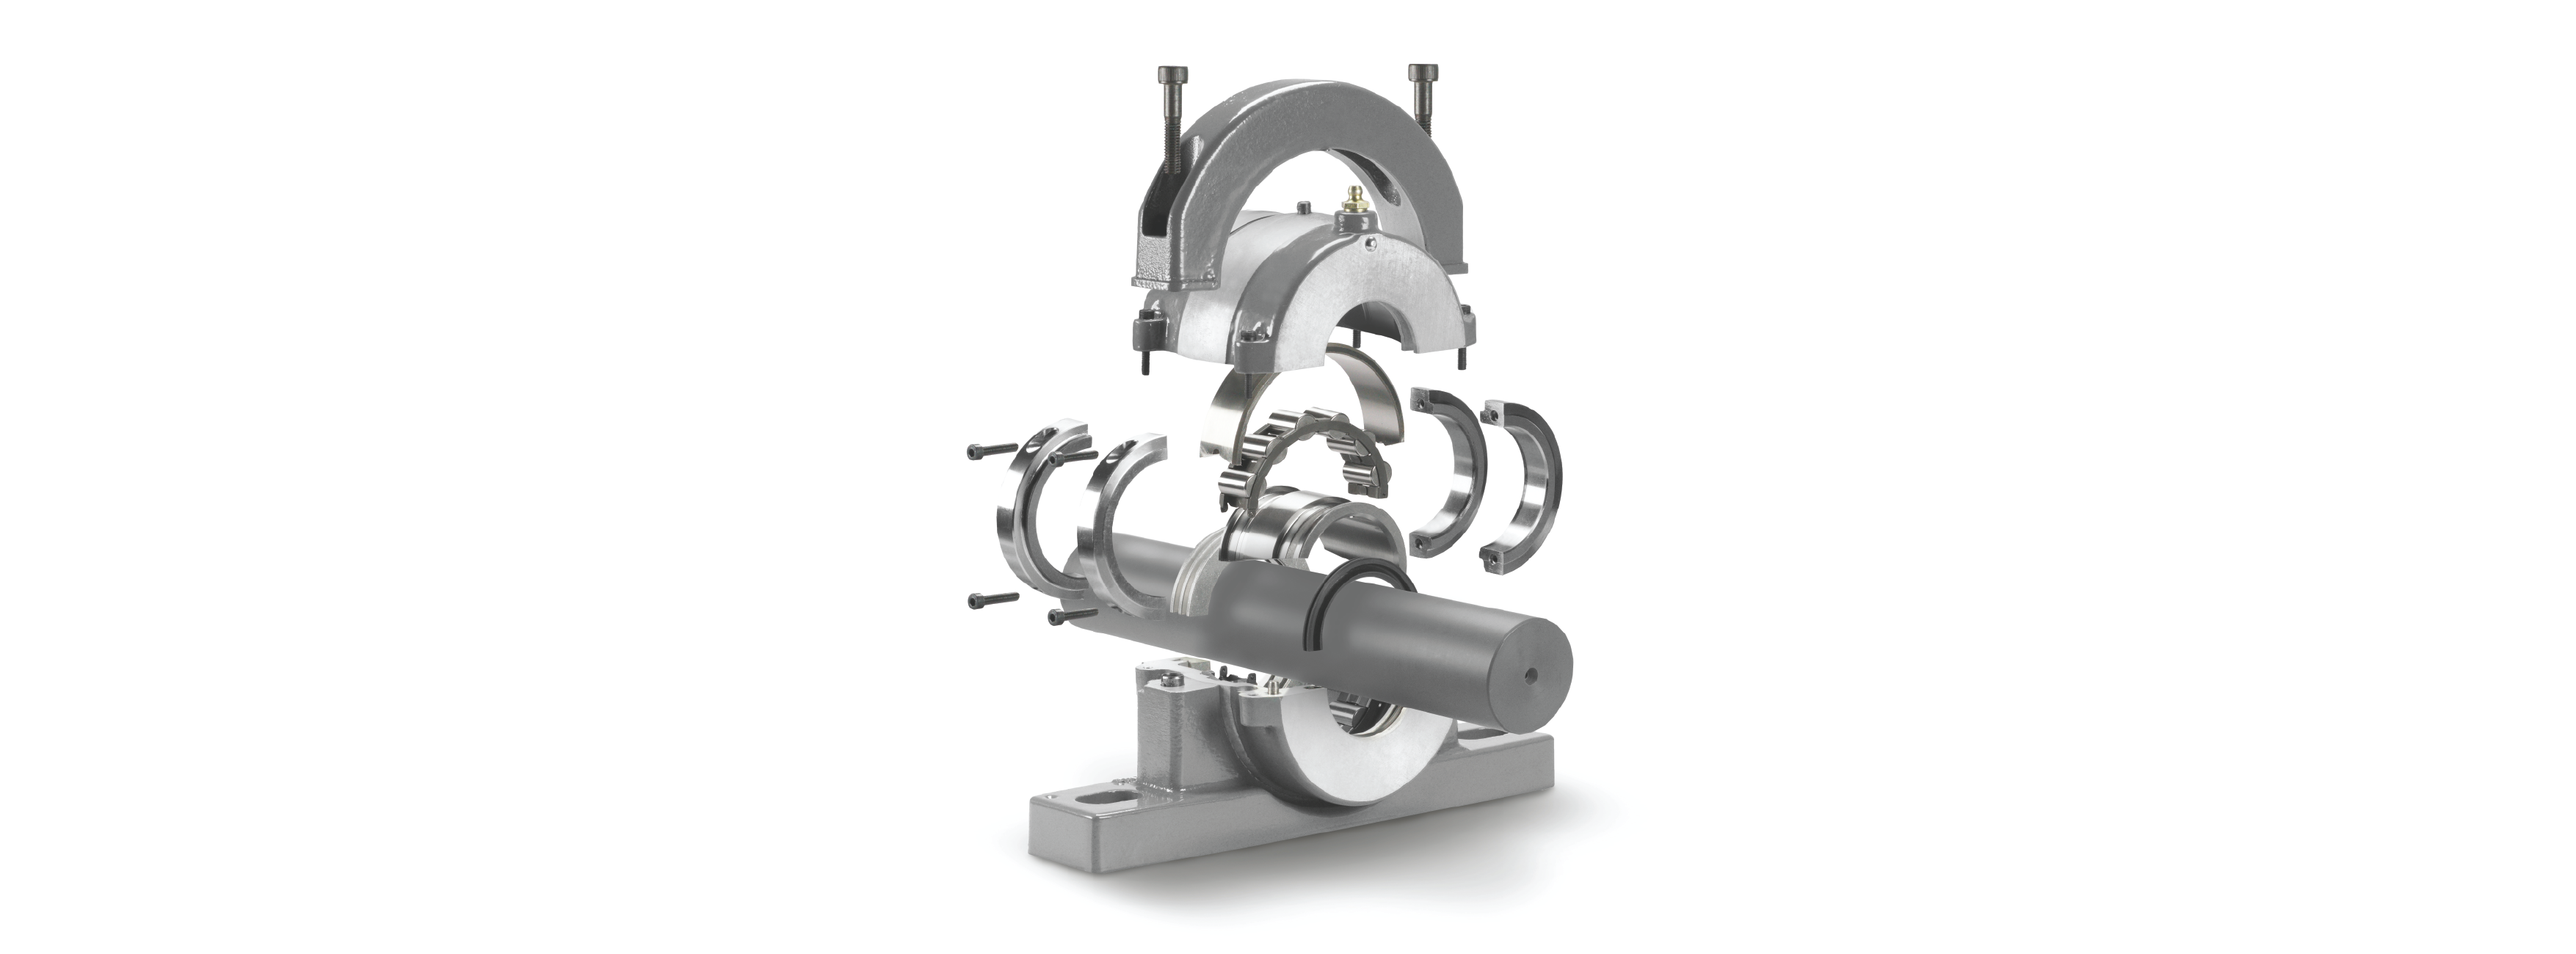 Introducing Split Bearings: Cost-Cutting Solution With Longer Bearing Life